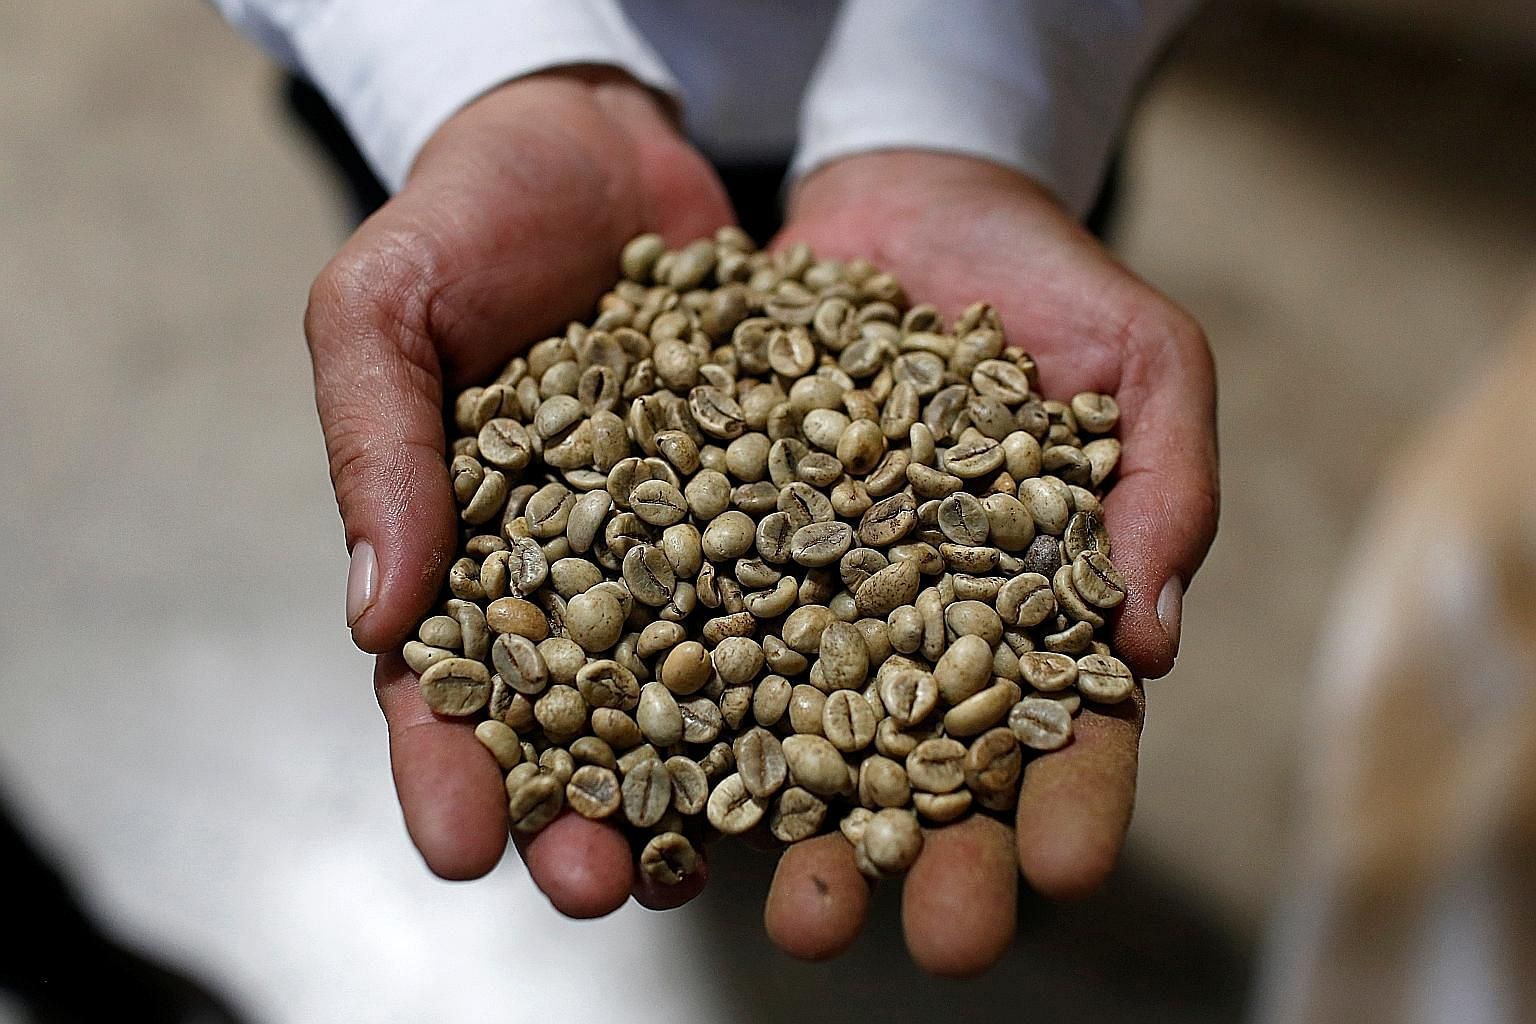 While futures on arabica and robusta coffee have fallen 40 per cent since the start of 2017, consumption has grown by an average of 2.1 per cent a year for the past decade, said the International Coffee Organisation.